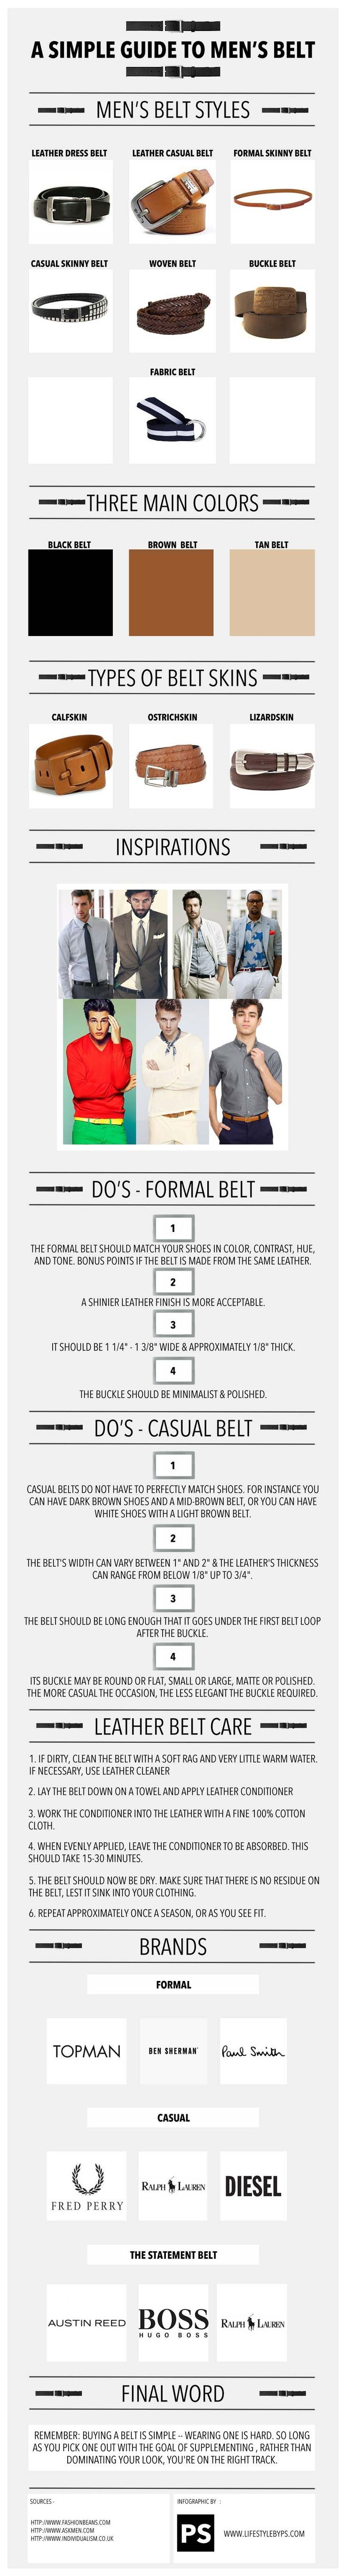 Picking the right belt may sound simple, but with so many styles and colors, it can get confusing.  Here's a quick little guide to picking the right belt.